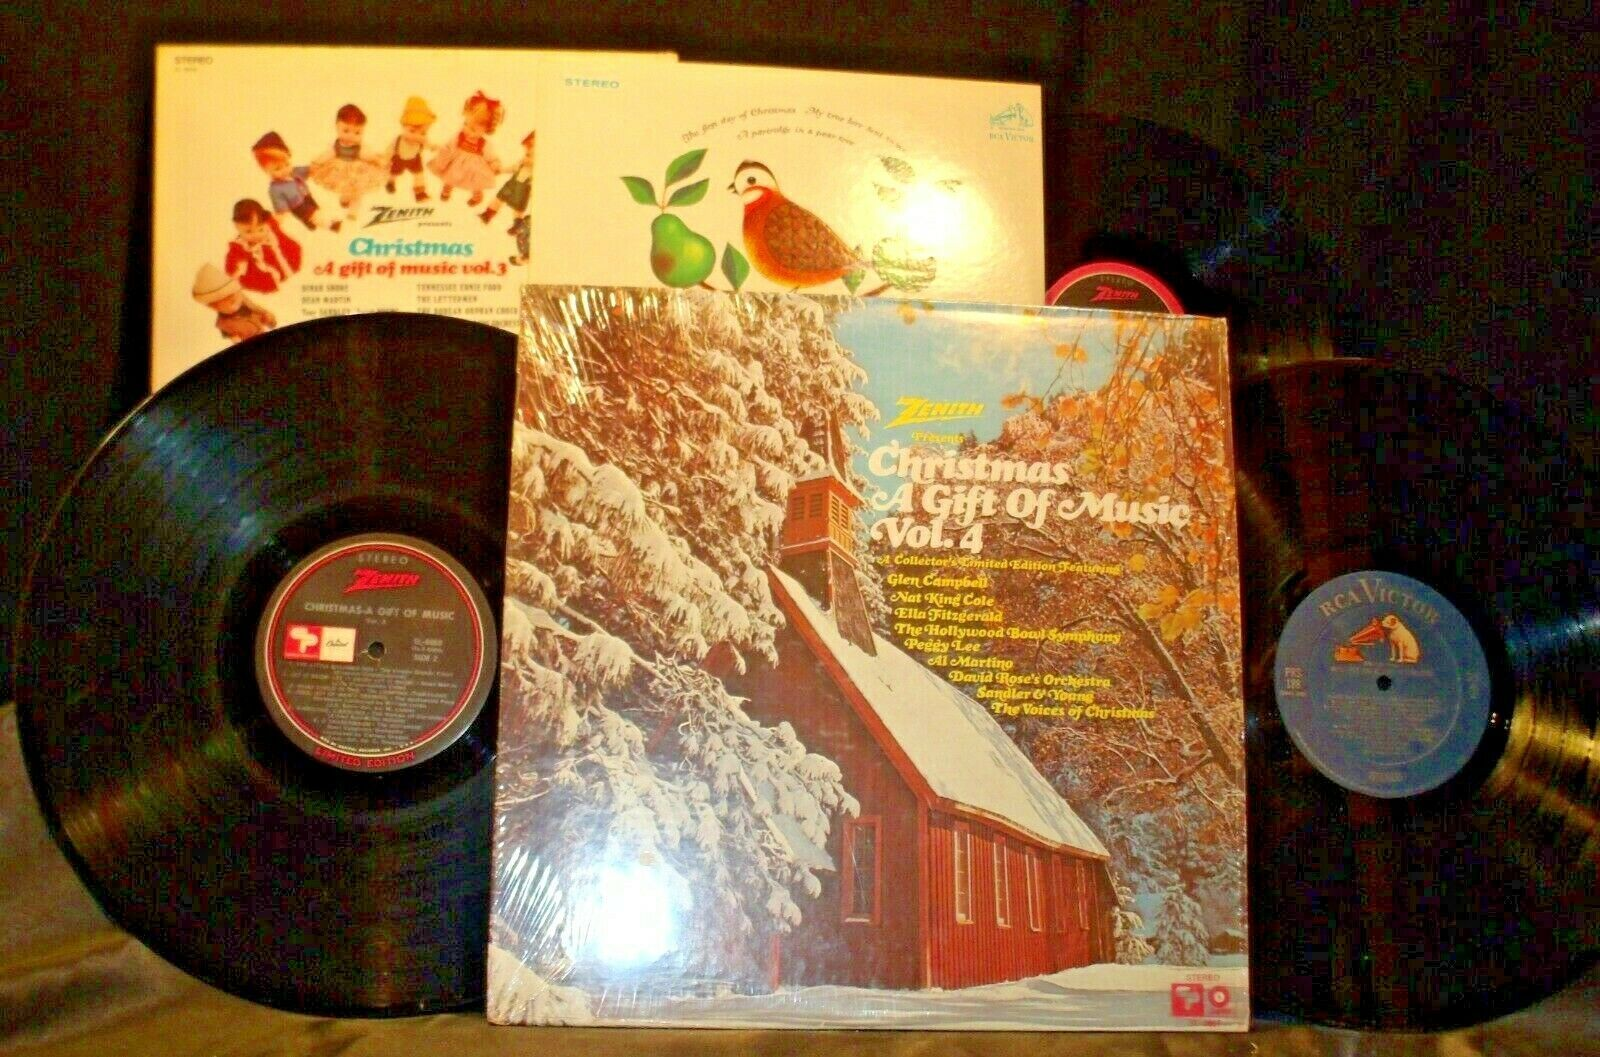 3 Christmas Records-The 12 Days of Christmas, A Christmas a Gift of Music Vol 3